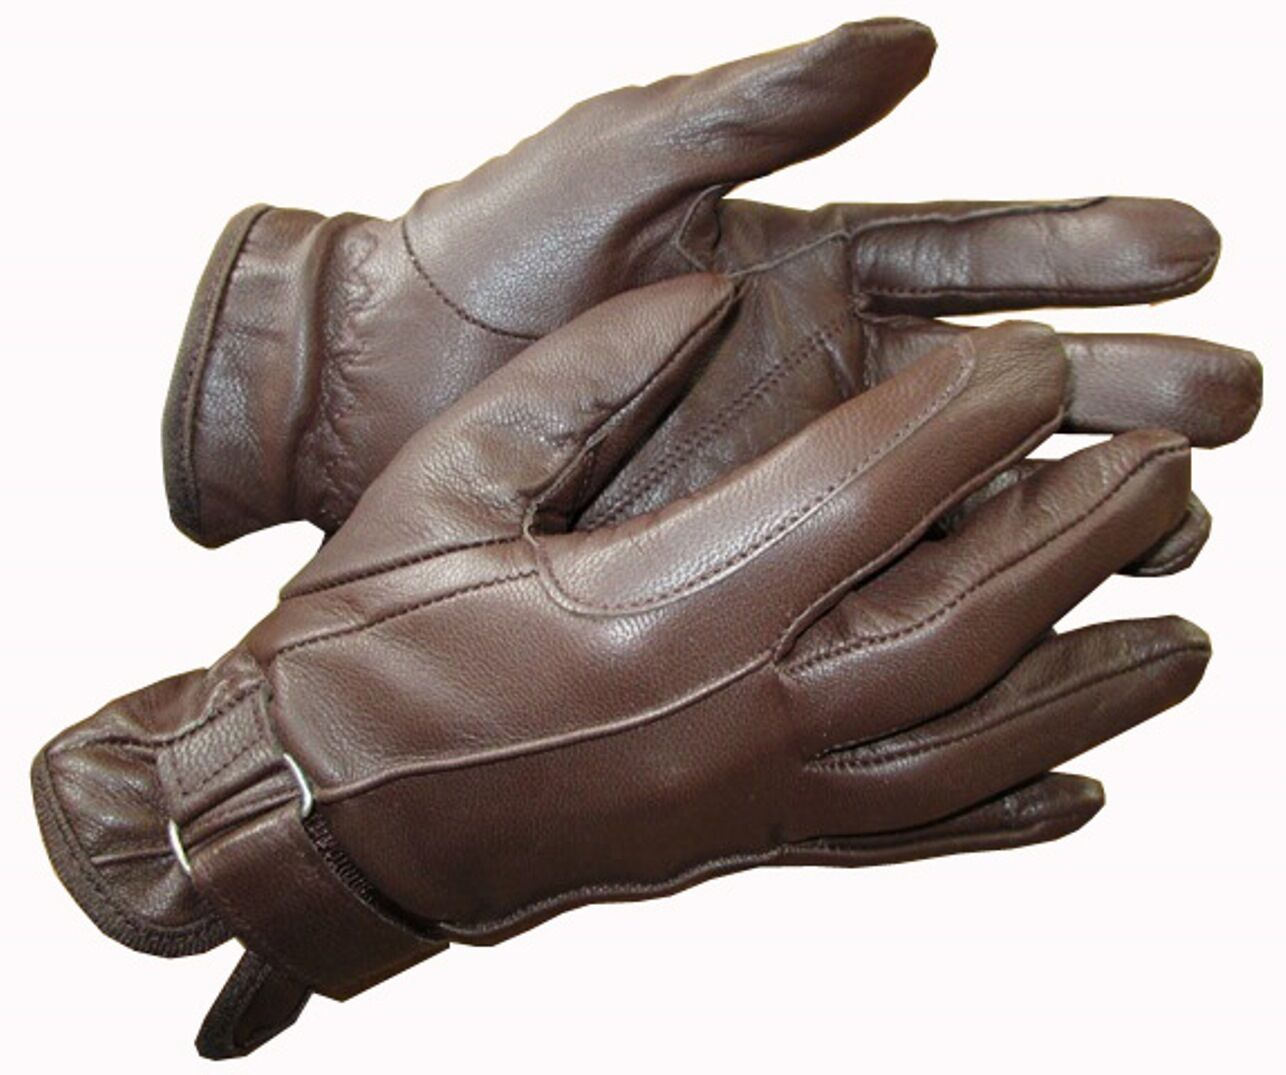 Ladies leather horse riding gloves - Ladies Leather Horse Riding Gloves